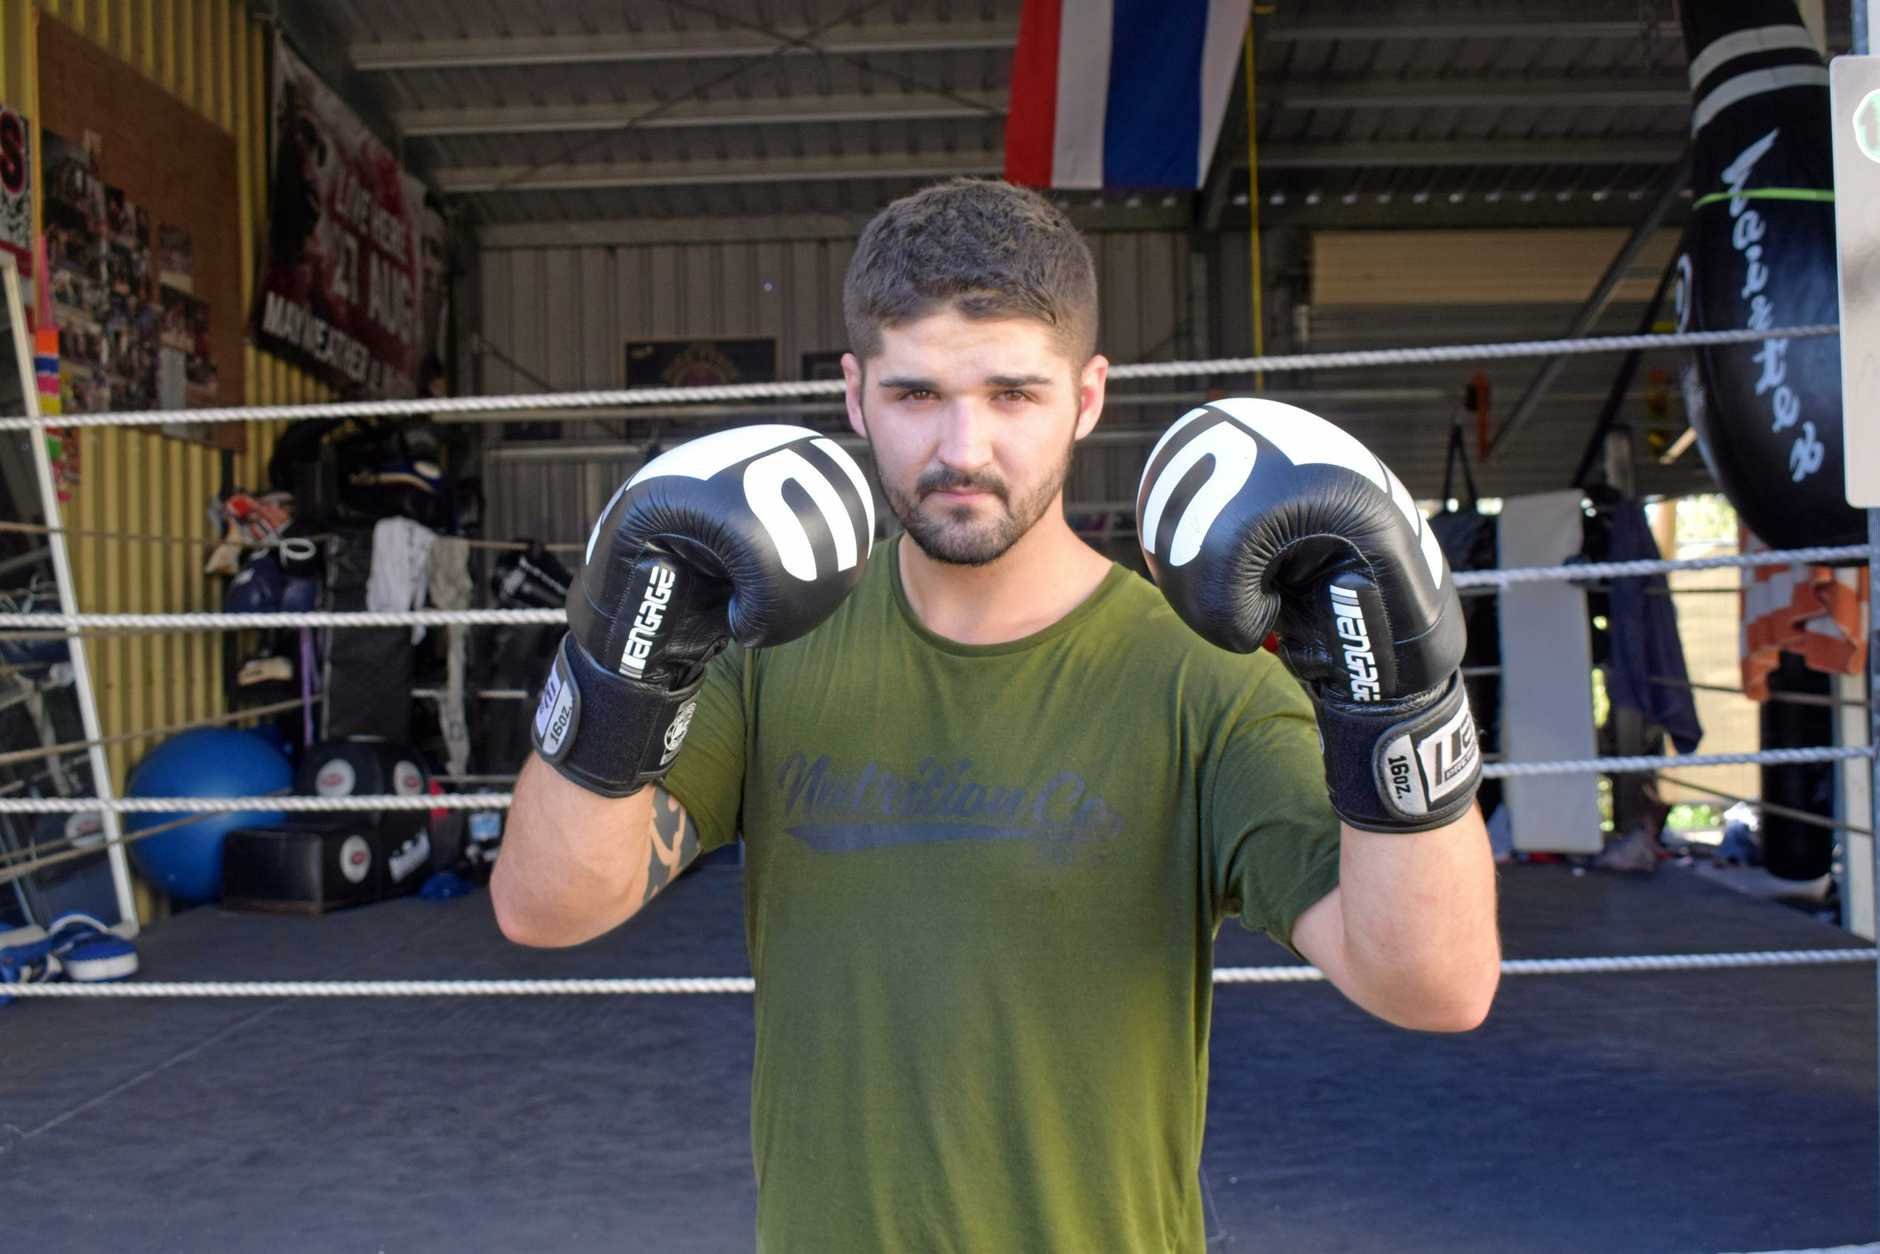 Jye Wyllie has been busy getting himself into shape ready to fight against an opponent from Townsville for the show in his hometown.